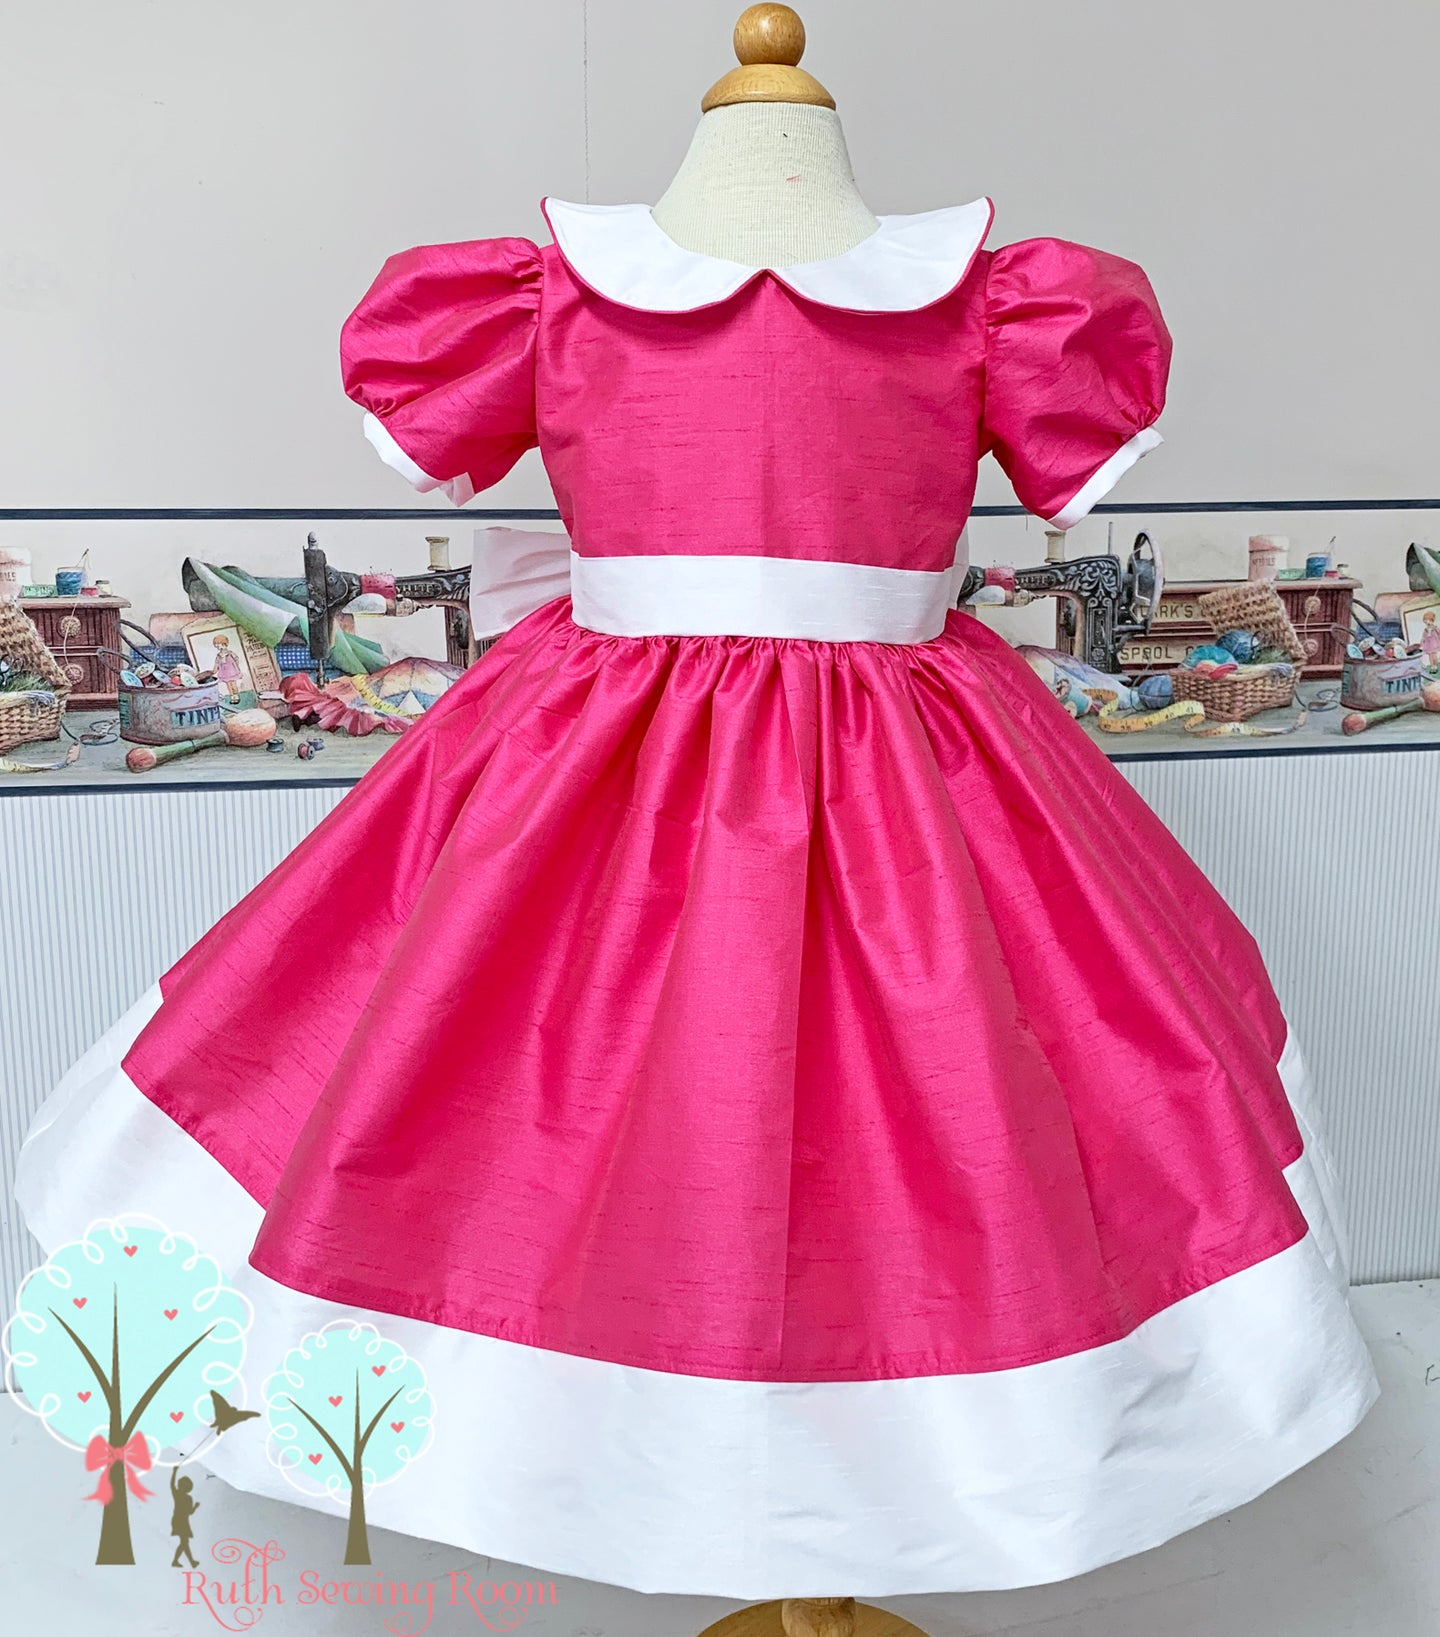 Sunday Best - Party Wear American Beauty Silk DUPIONI, Wedding Flower Girl Silk Christmas Party Dress, Birthday, Celebration, Recital, Girls, Other Colors Available